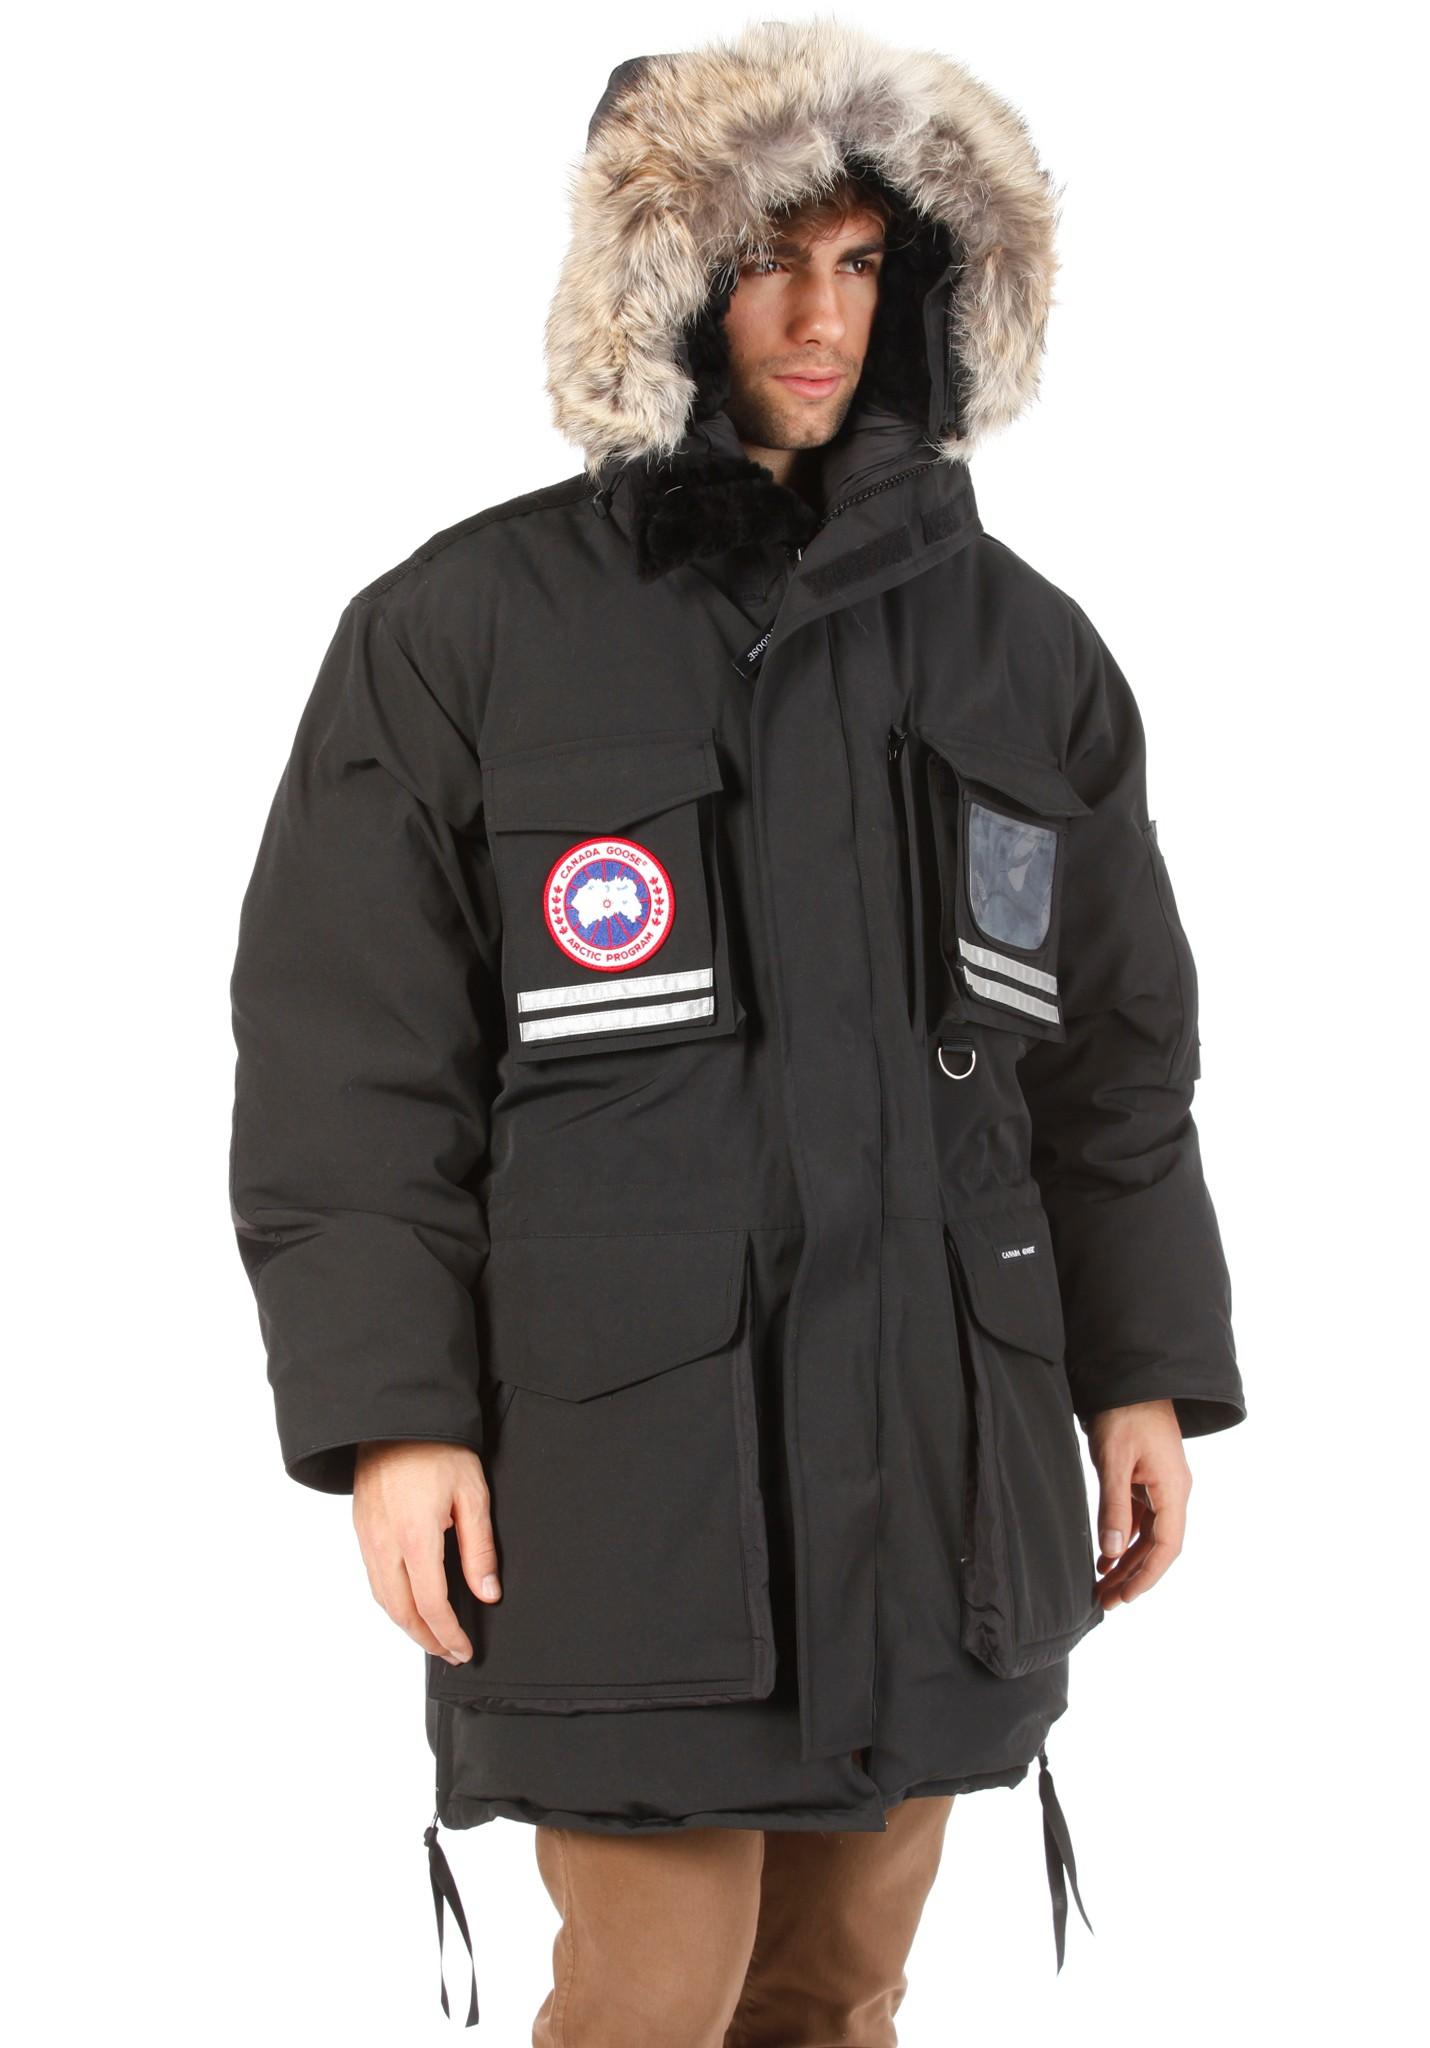 neu canada goose snow mantra parka jacket herren funktionsjacke ebay. Black Bedroom Furniture Sets. Home Design Ideas